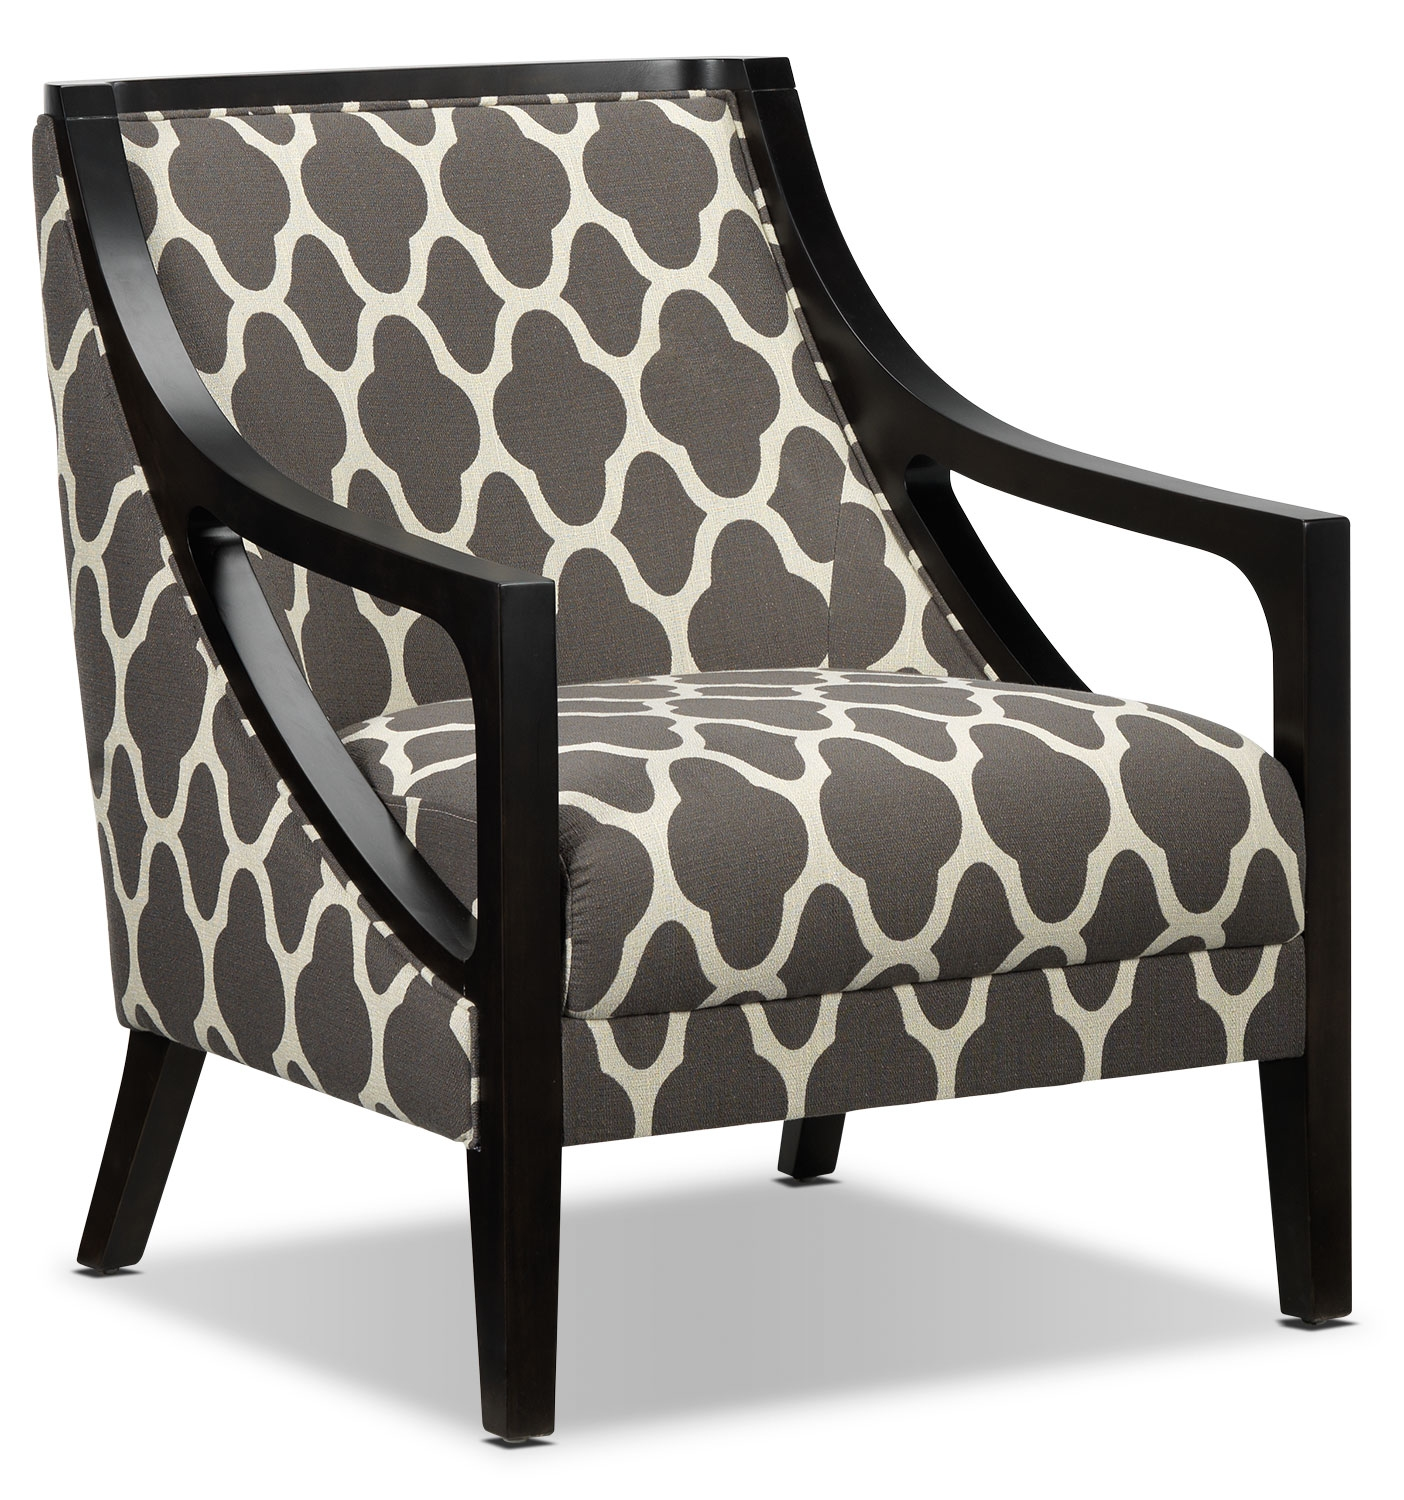 Cozy Accent Chair for Home Furniture Ideas: Best Accent Chair For Home Furniture Ideas With Accent Chairs With Arms And Accent Chairs For Living Room